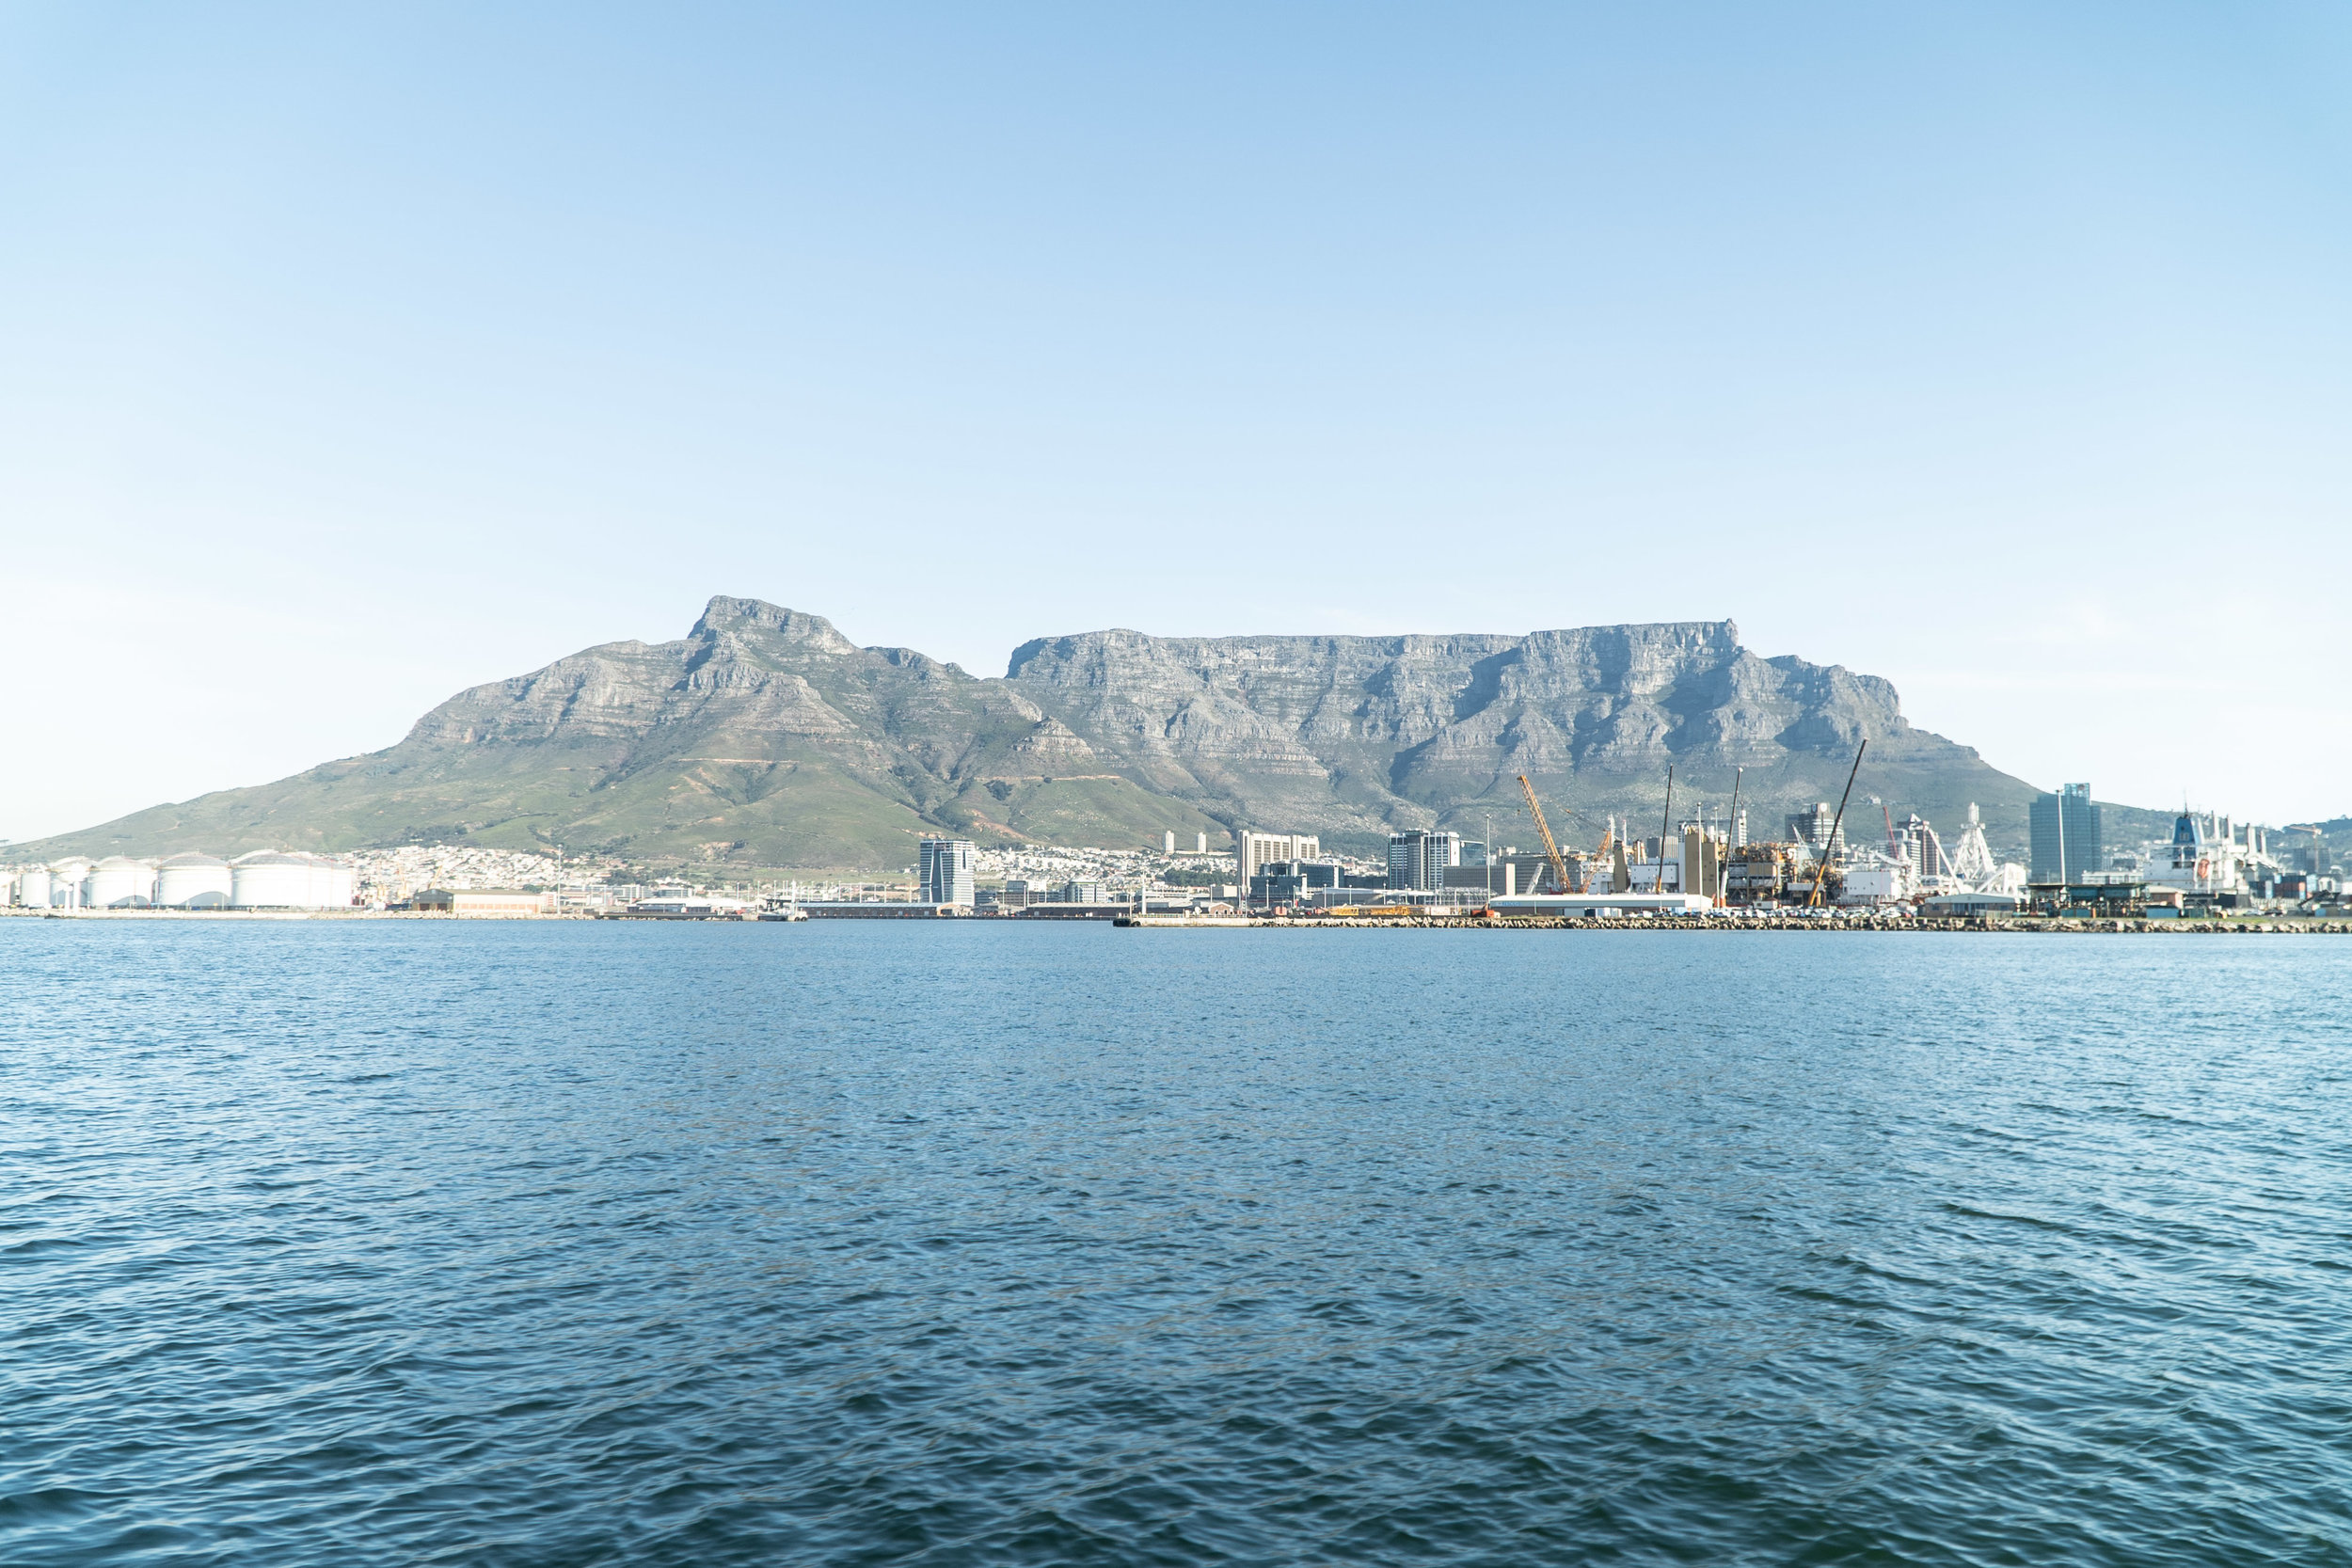 Day 7 - Today we will visit South Africa's most iconic landmark. Table Mountain is probably the most photographed landmark in South Africa, is now one of the New 7 Wonders of Nature. We will ride our way to the top and admire a breathtaking view of the city.